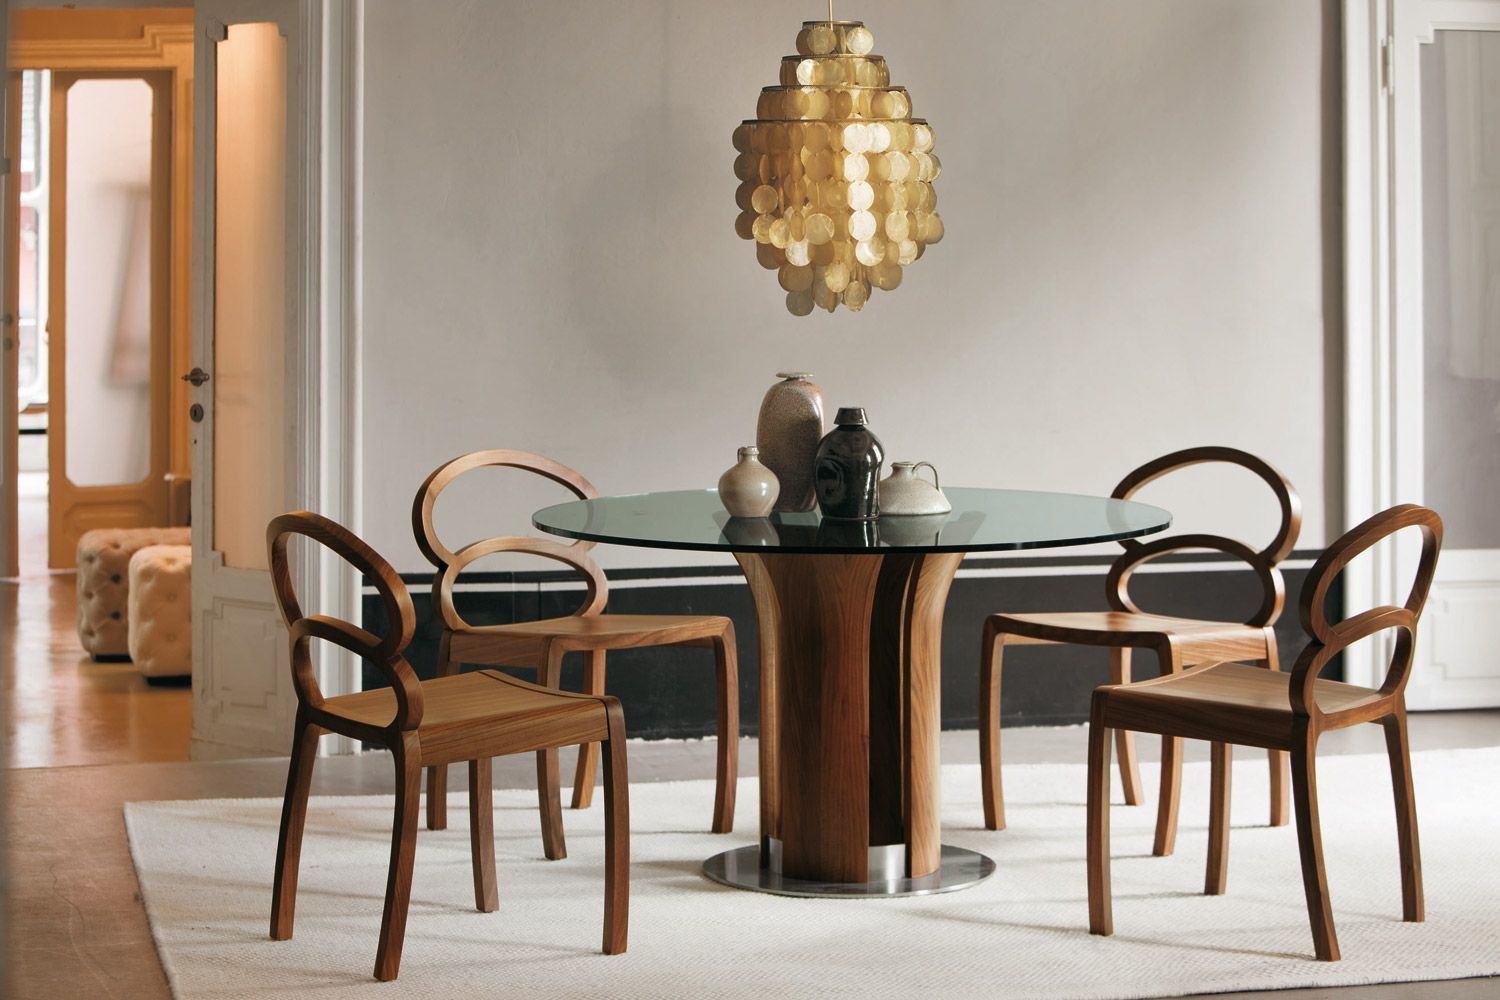 Porada - Dining table